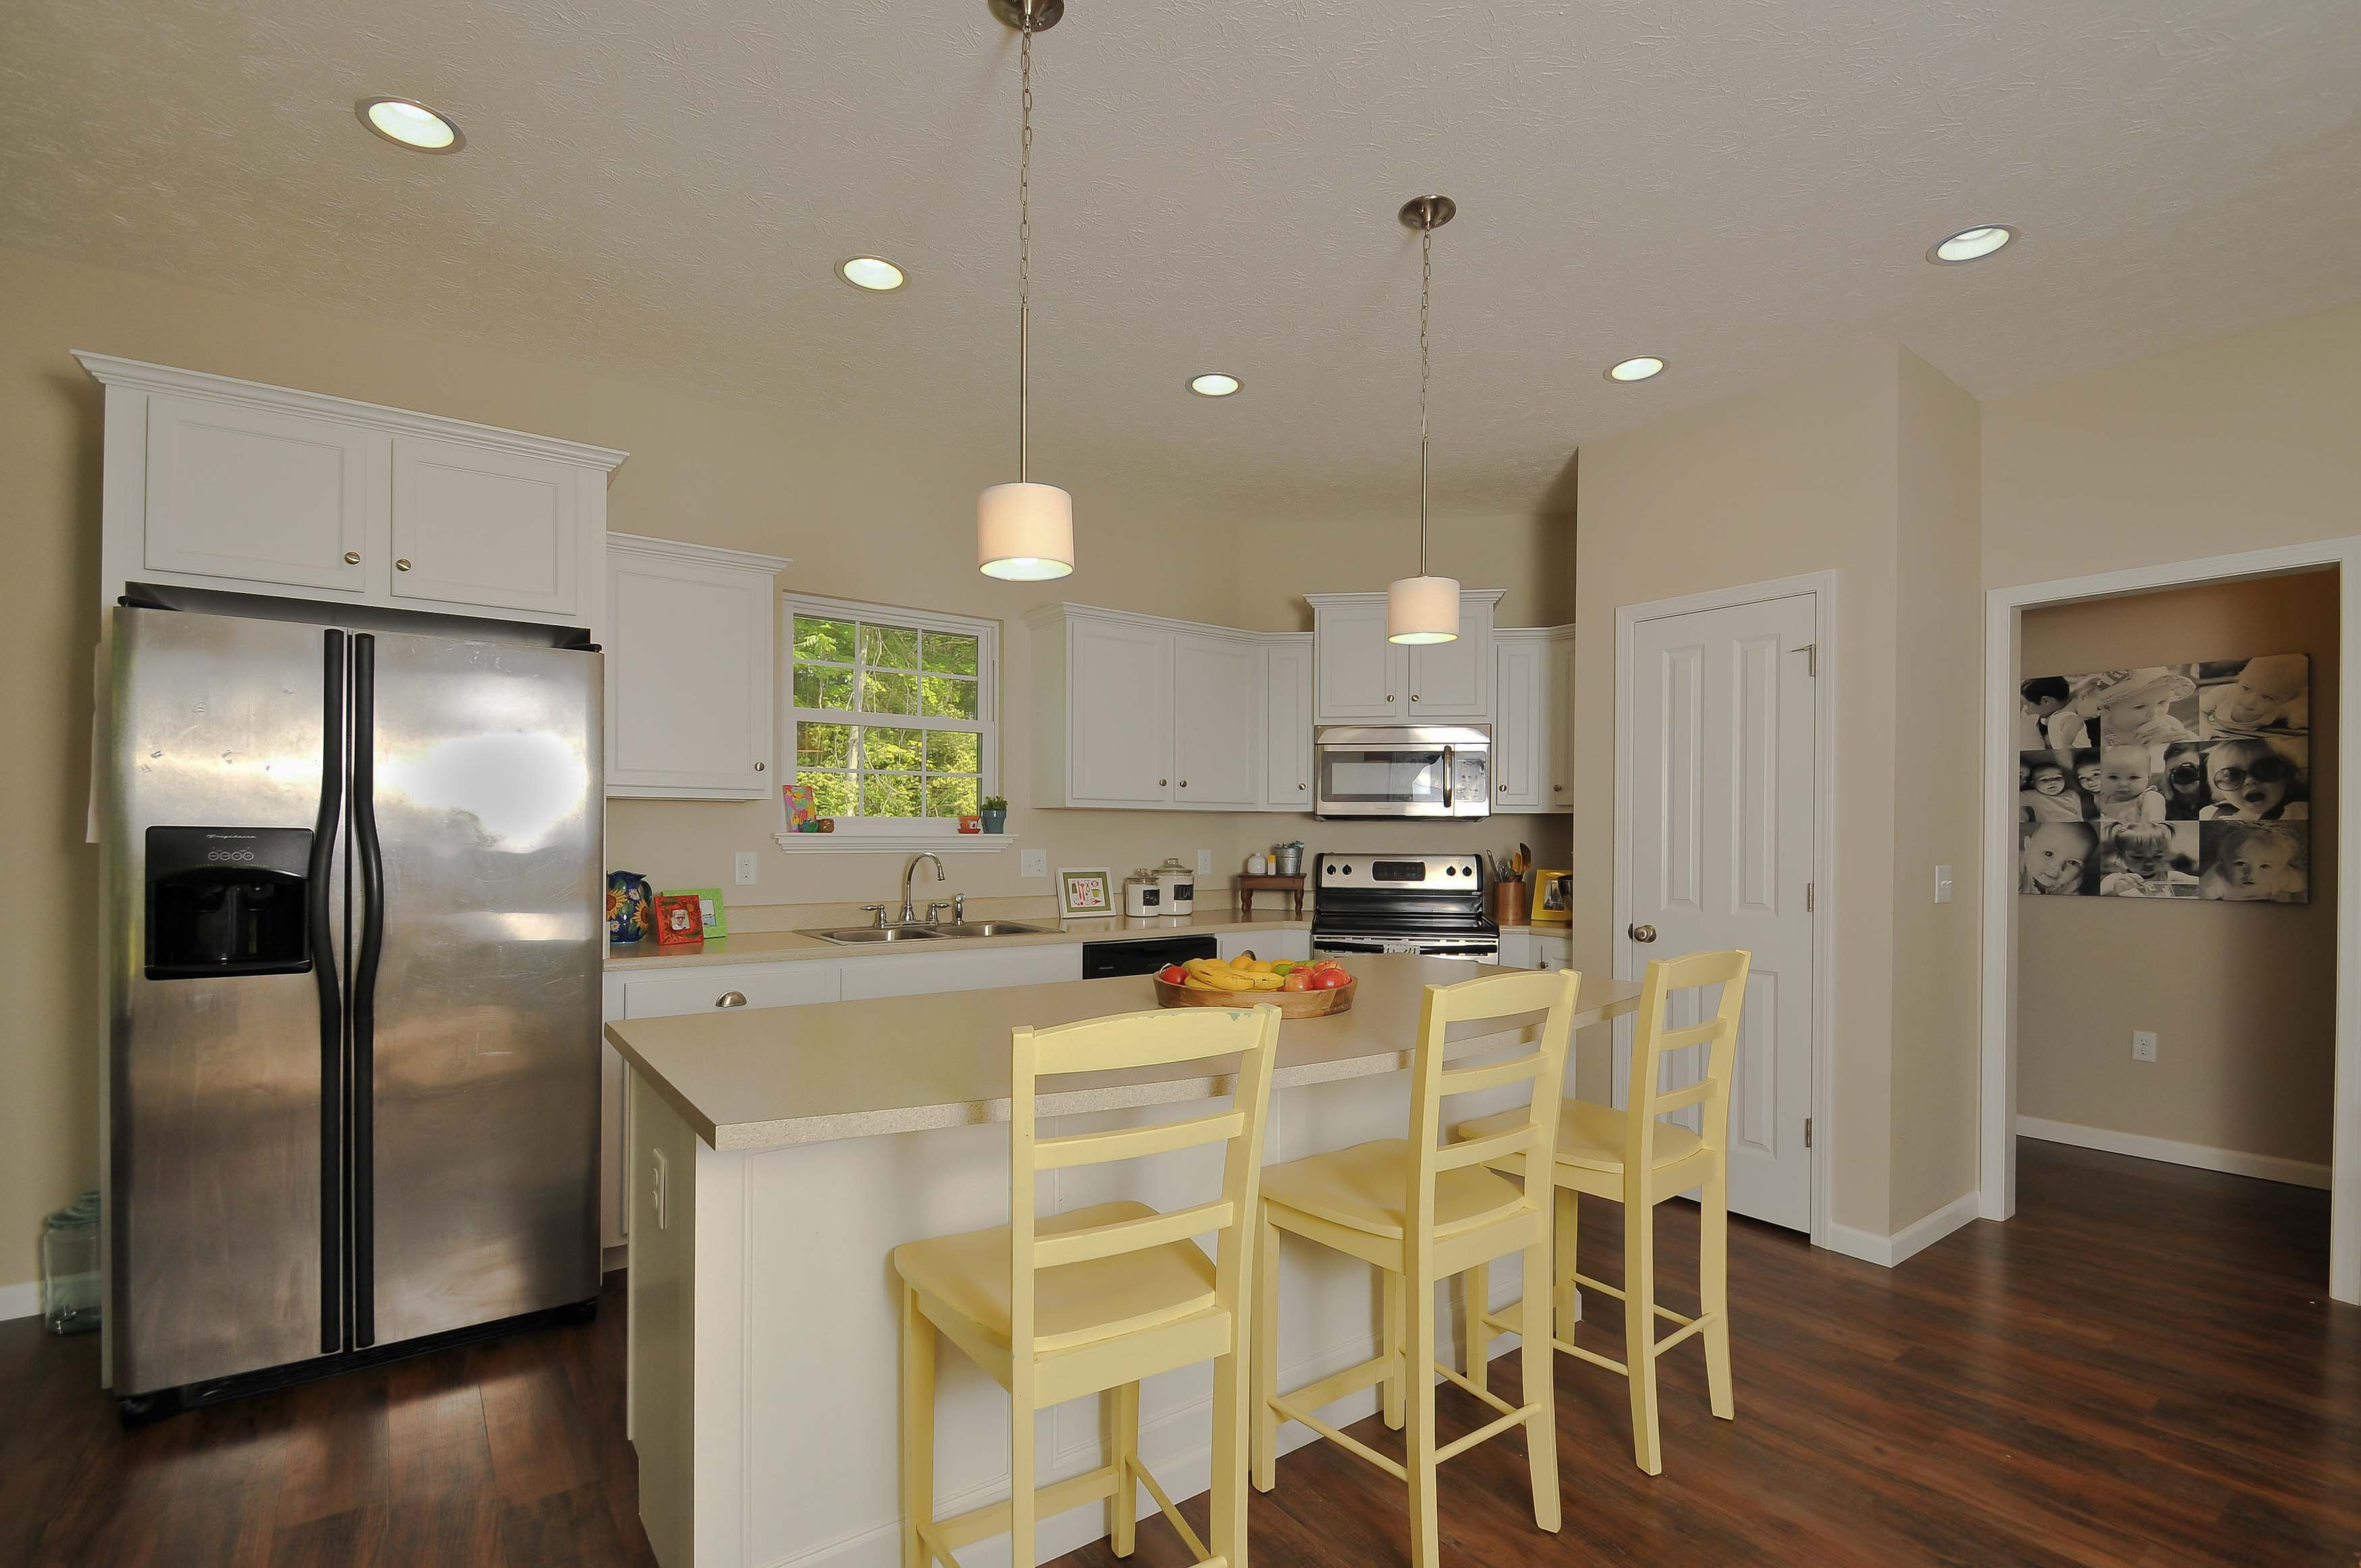 Kitchen of Talladega features white cabinets, and laminate countertops